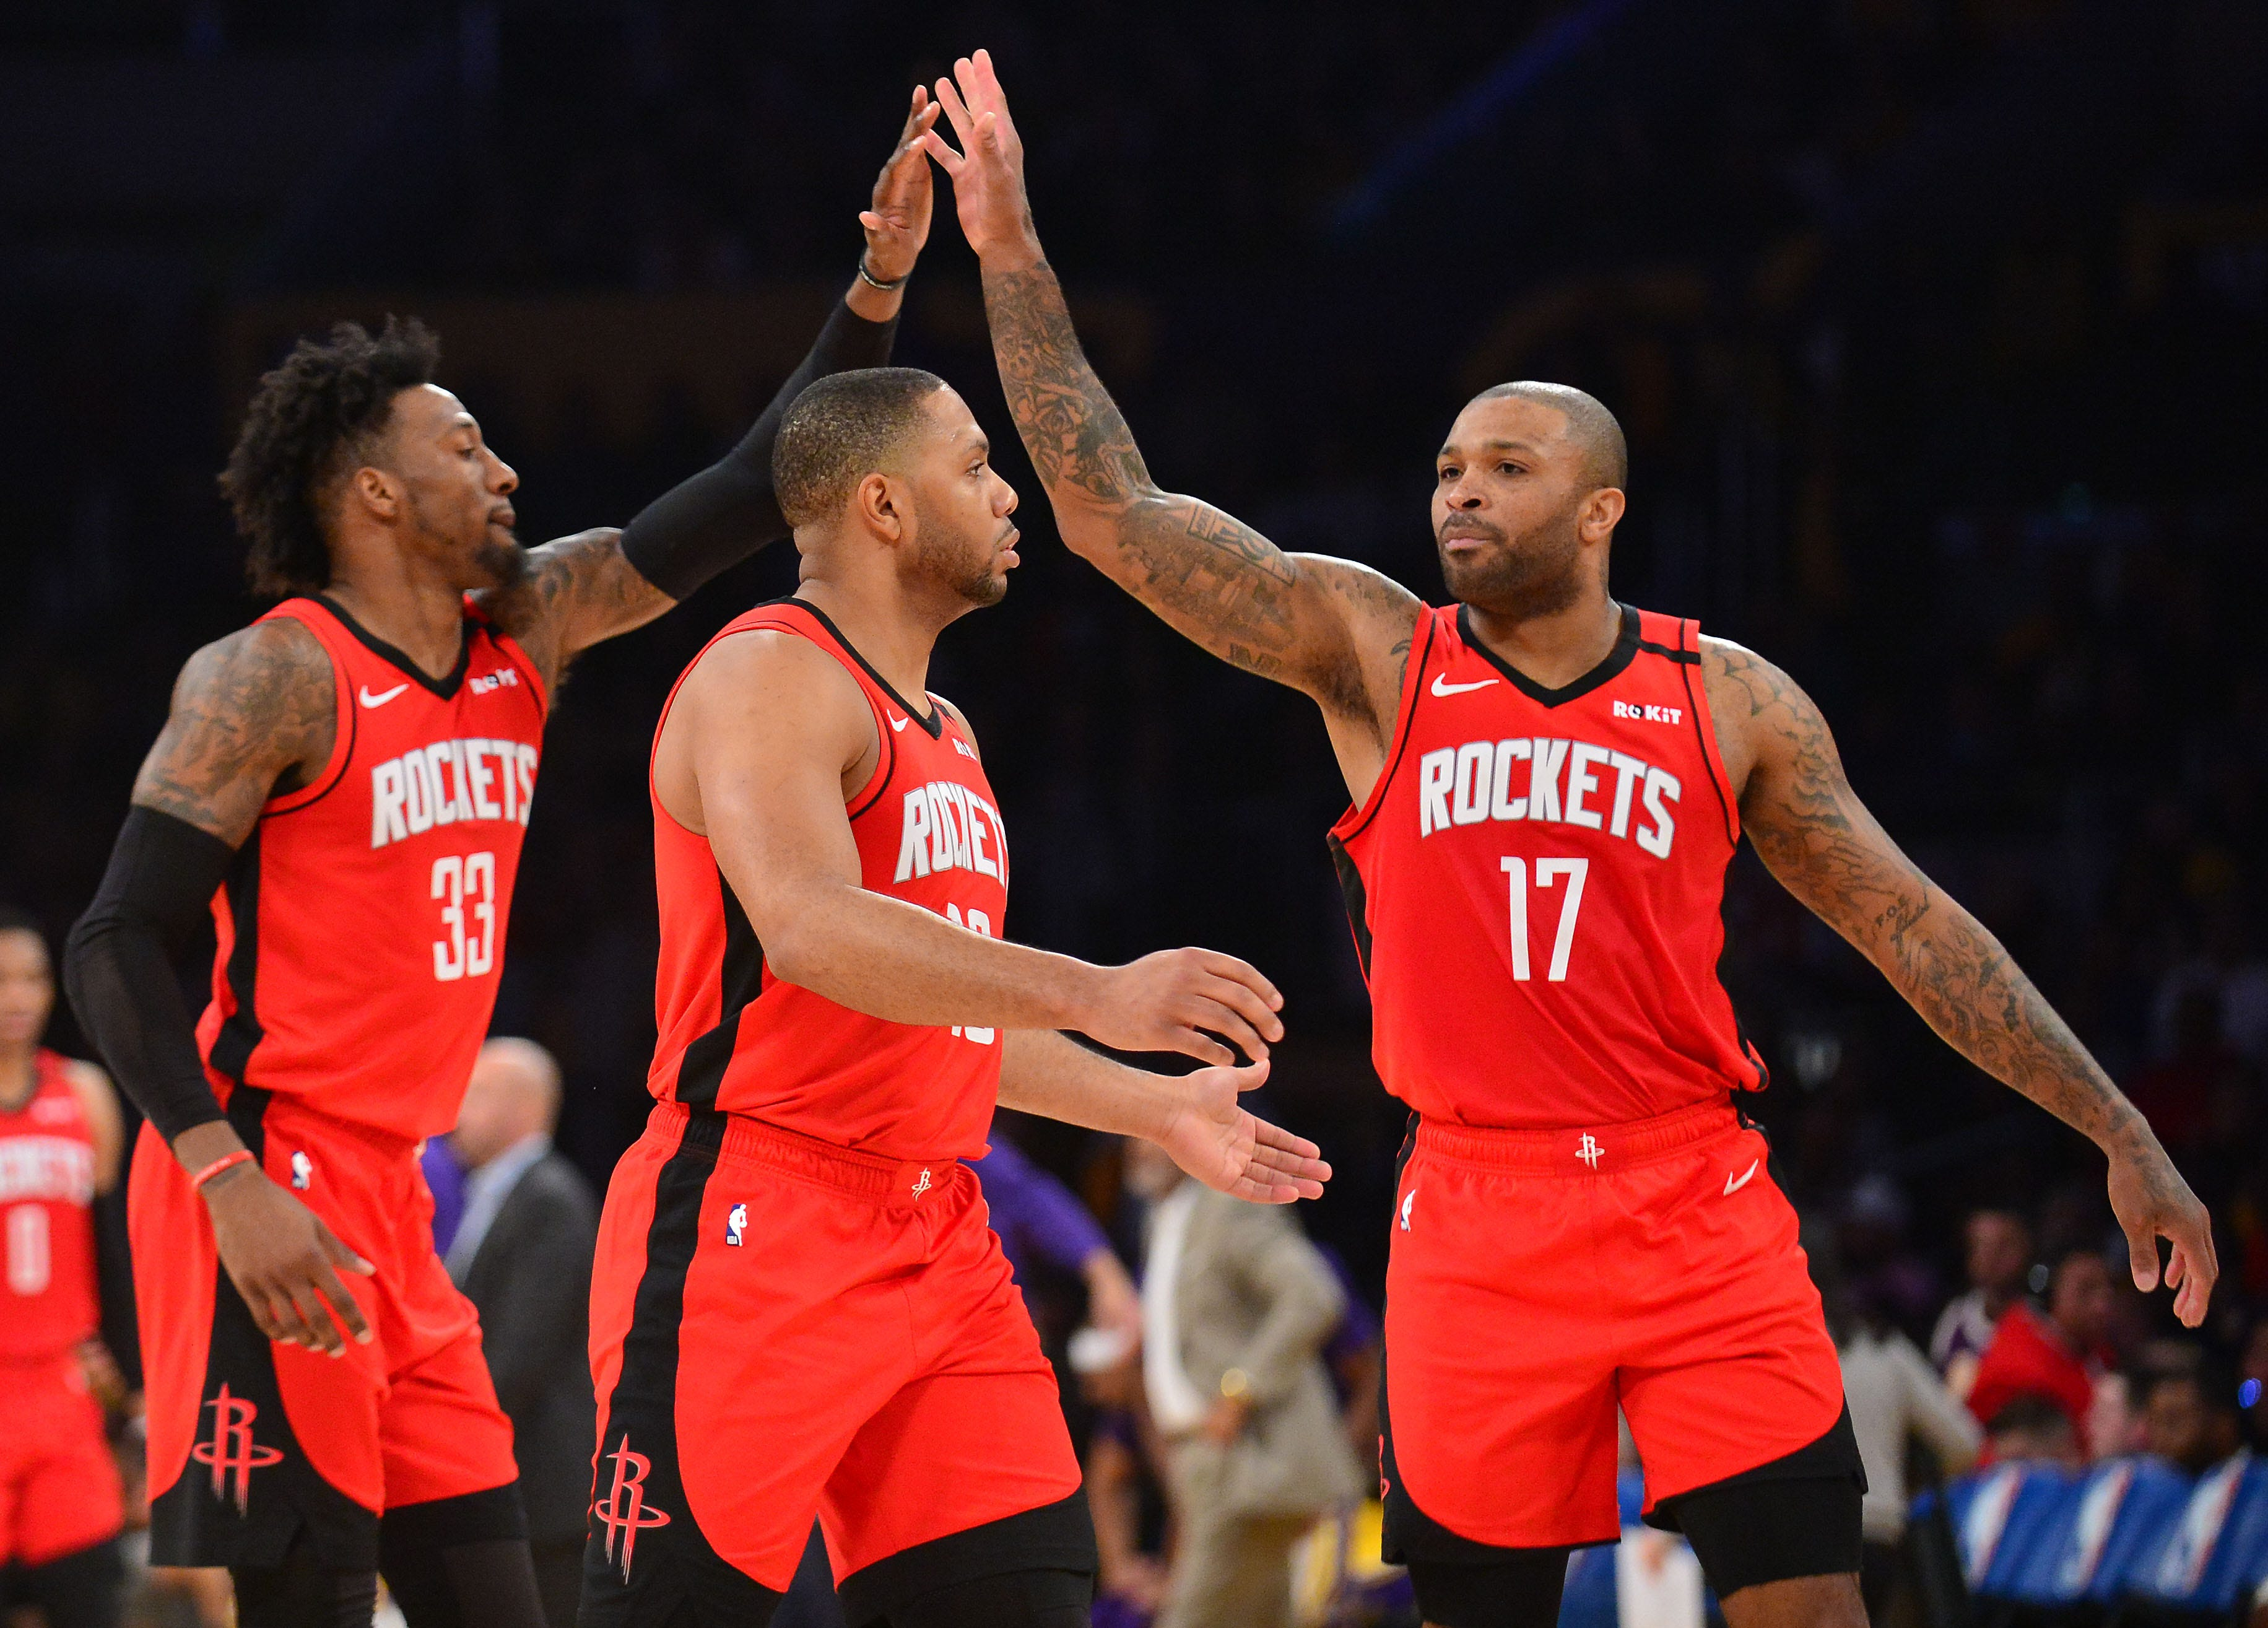 Rockets GM Daryl Morey happy with roster after trade:  We feel very comfortable we can beat the Lakers